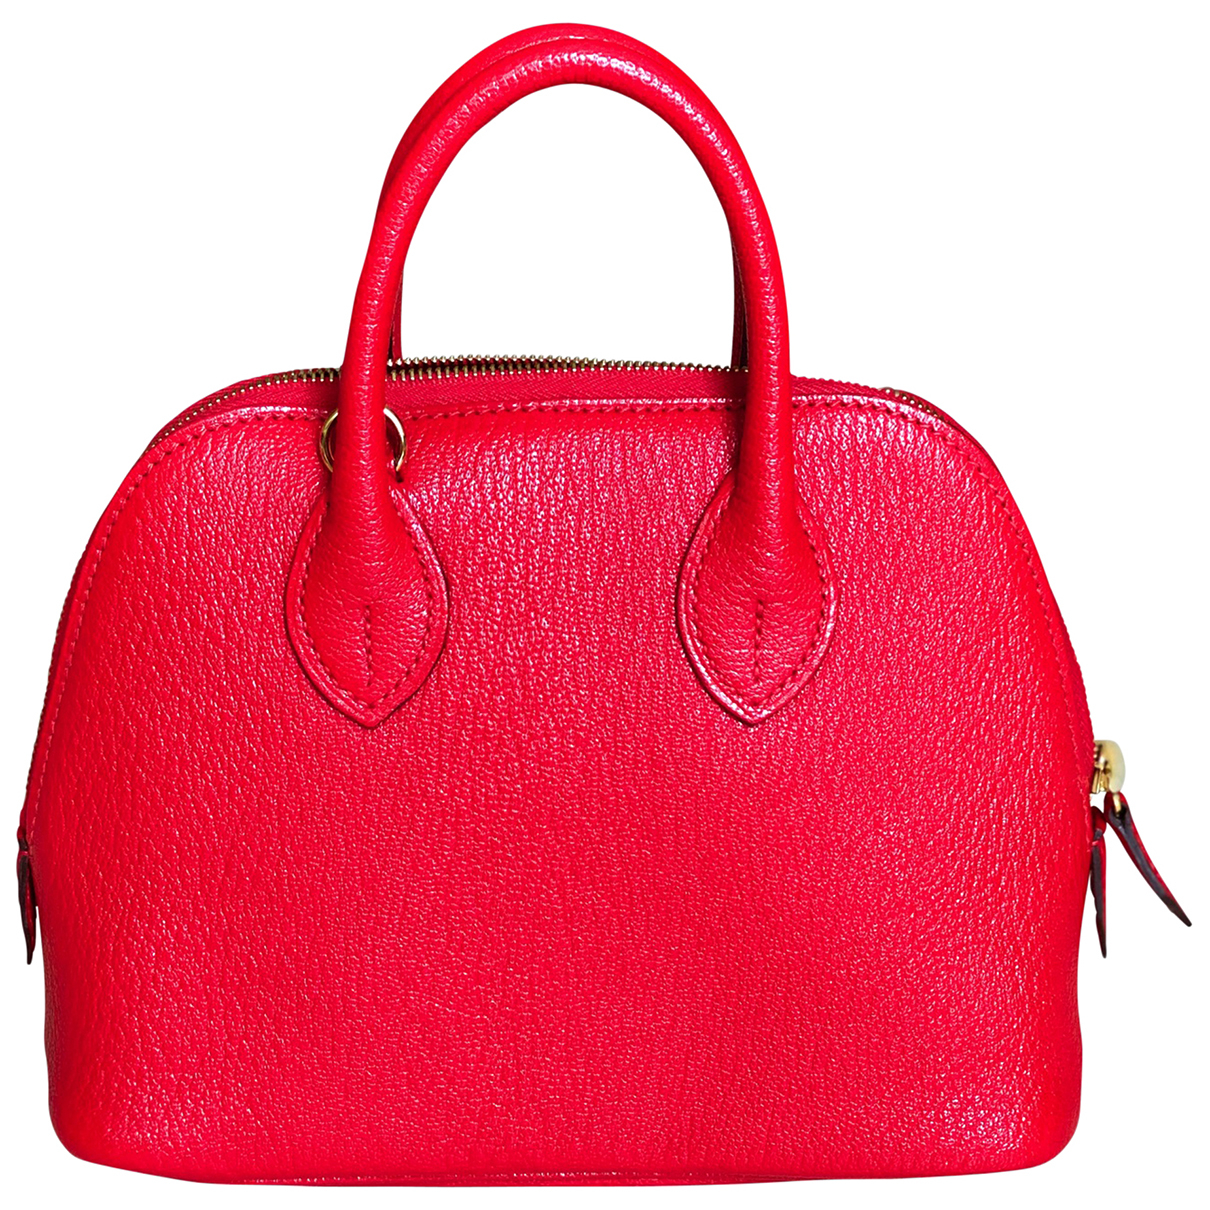 Hermès Bolide Red Leather handbag for Women N